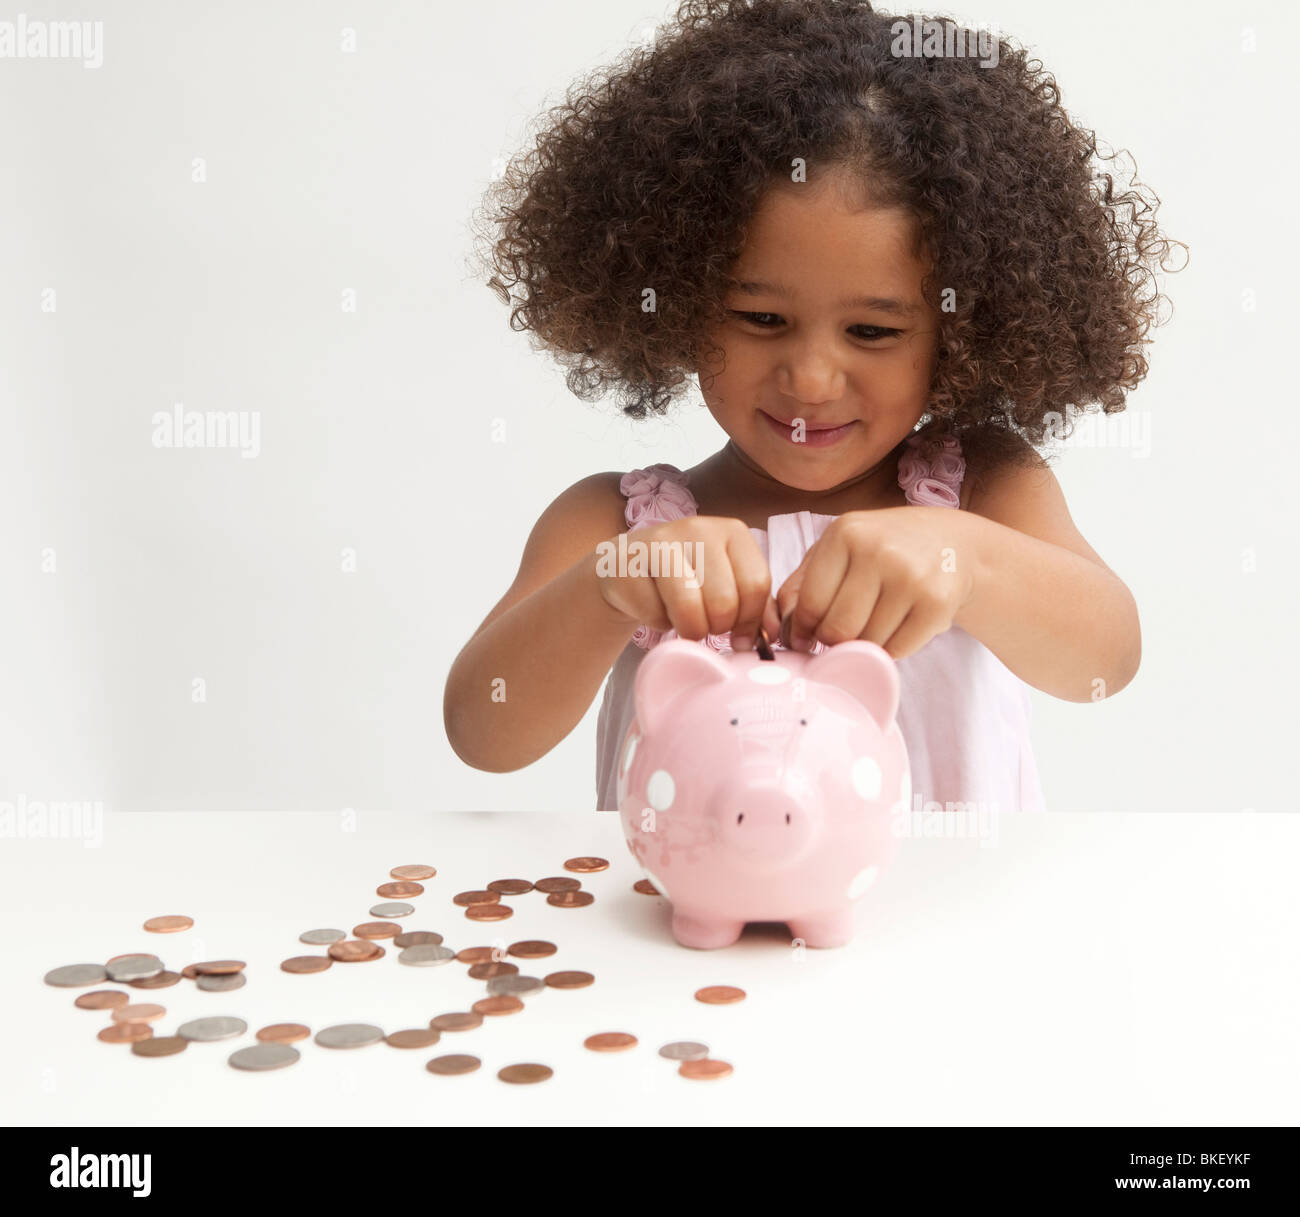 Young girl putting money in piggy bank - Stock Image